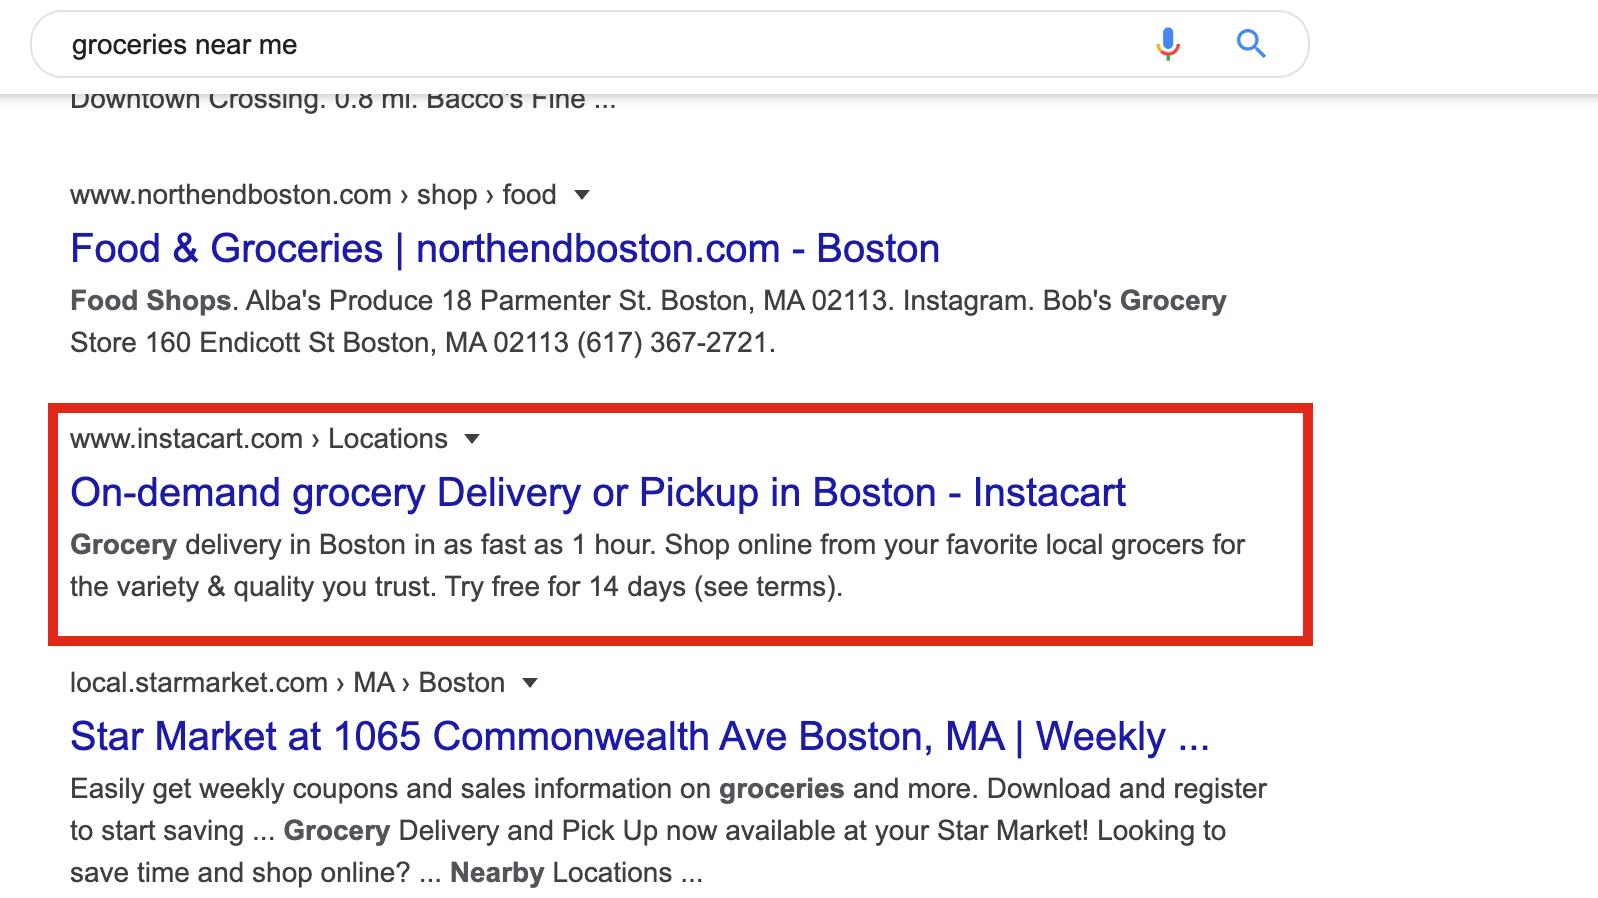 marketing funnels example instacart google ads